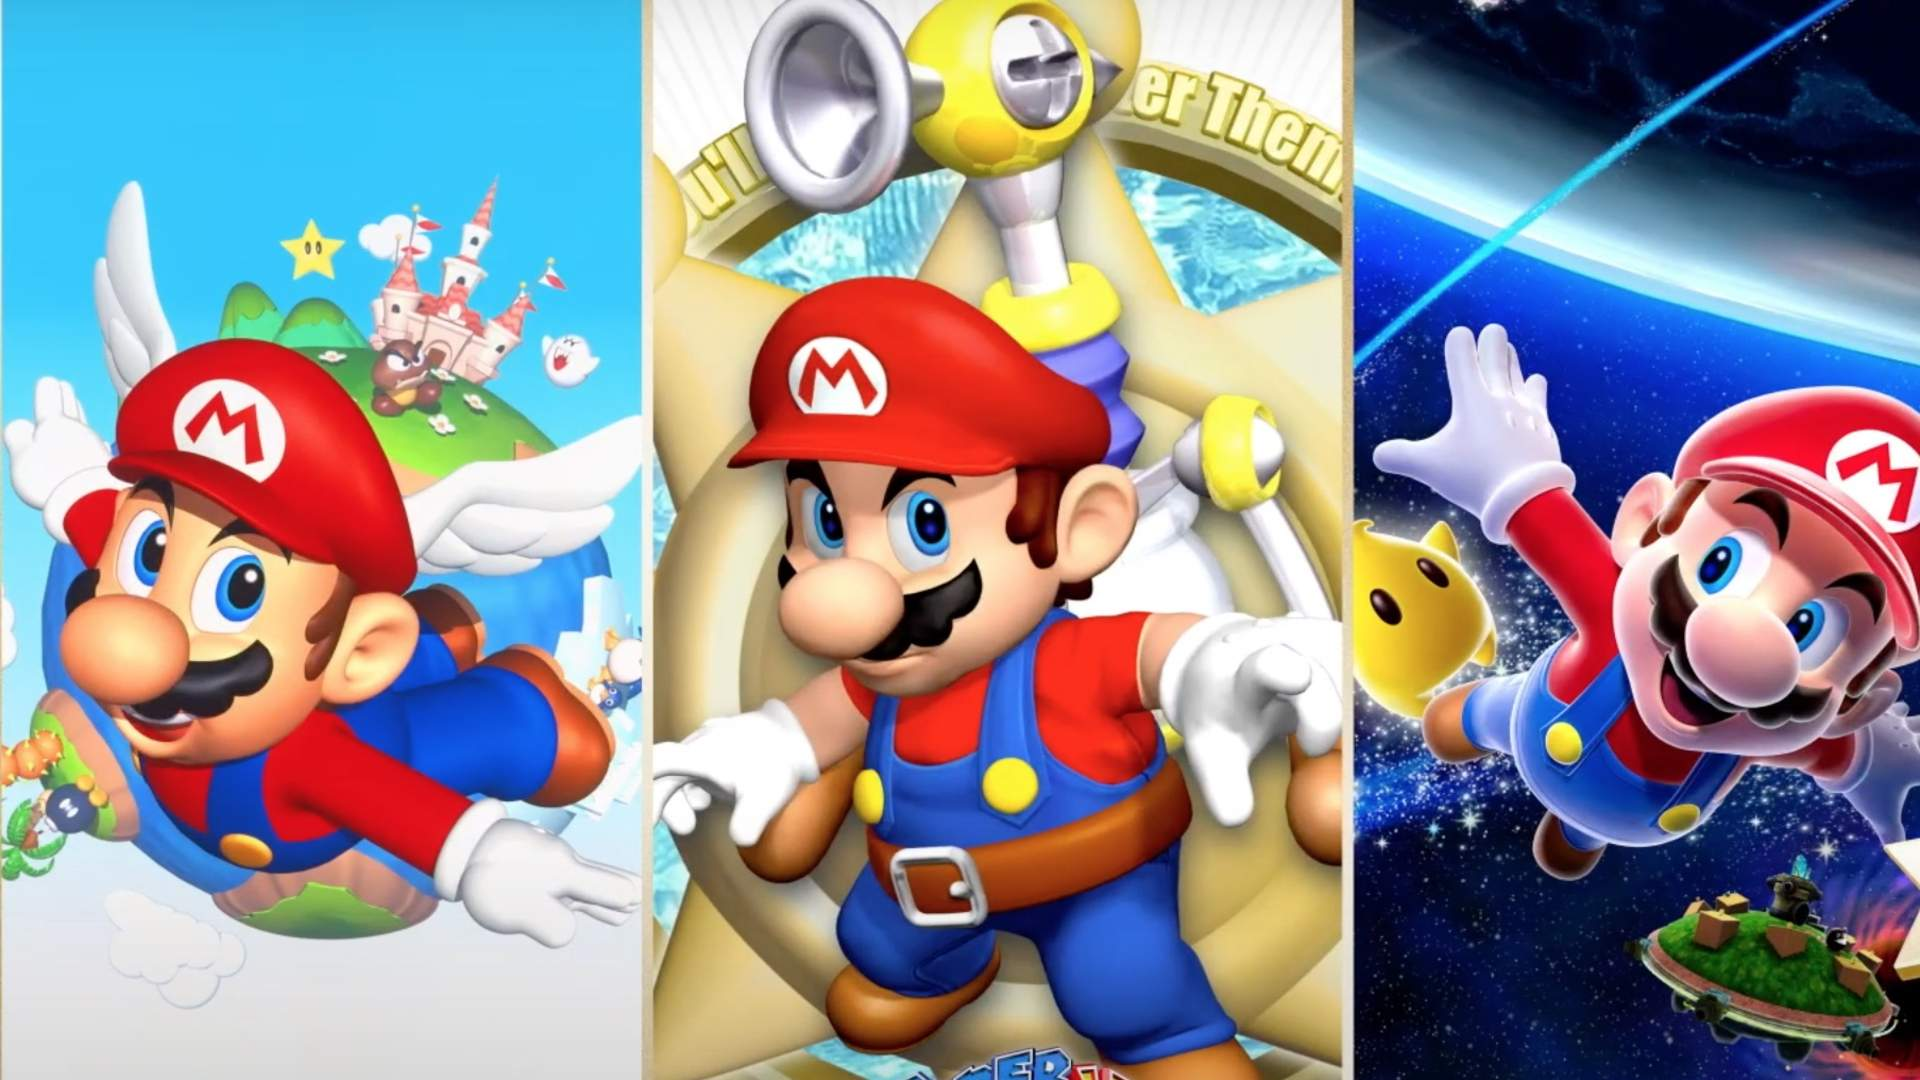 3 of the Best Mario Games Ever are in Super Mario 3D All-Stars! Woohoo!